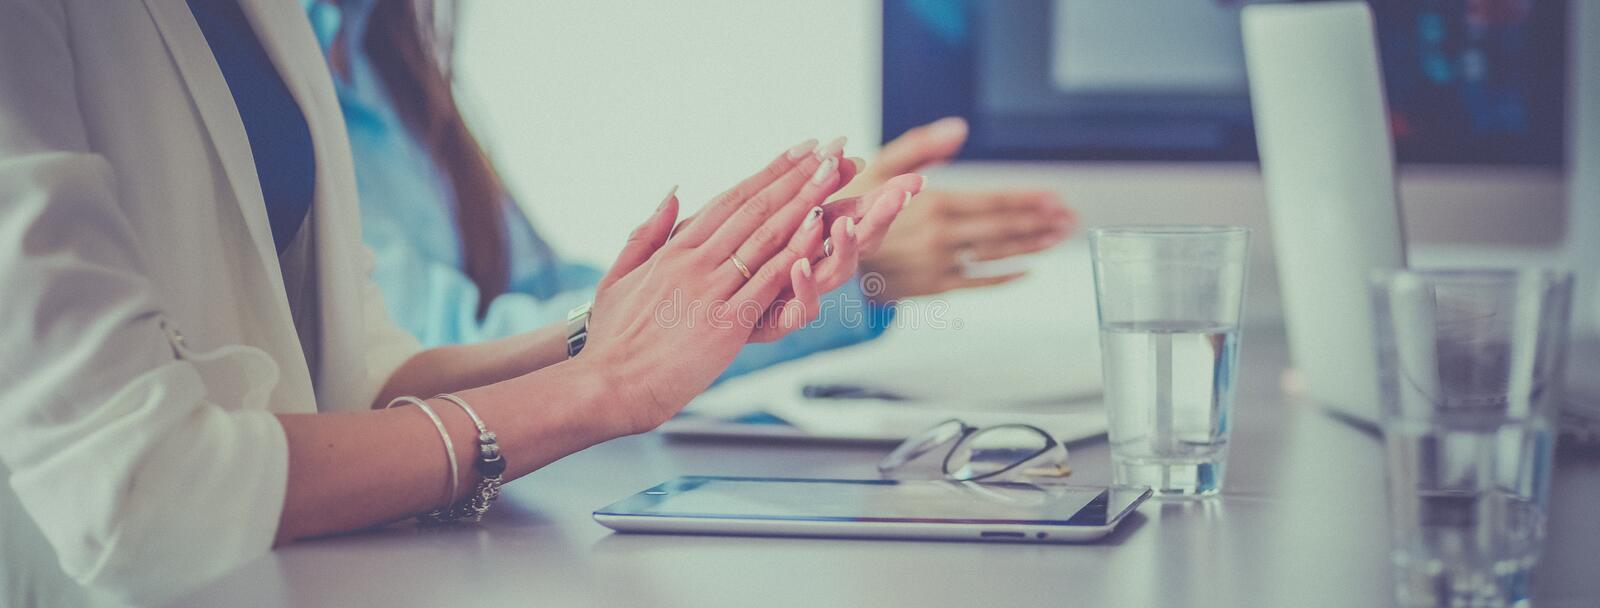 Photo of partners clapping hands after business seminar. Professional education, work meeting, presentation.  stock image